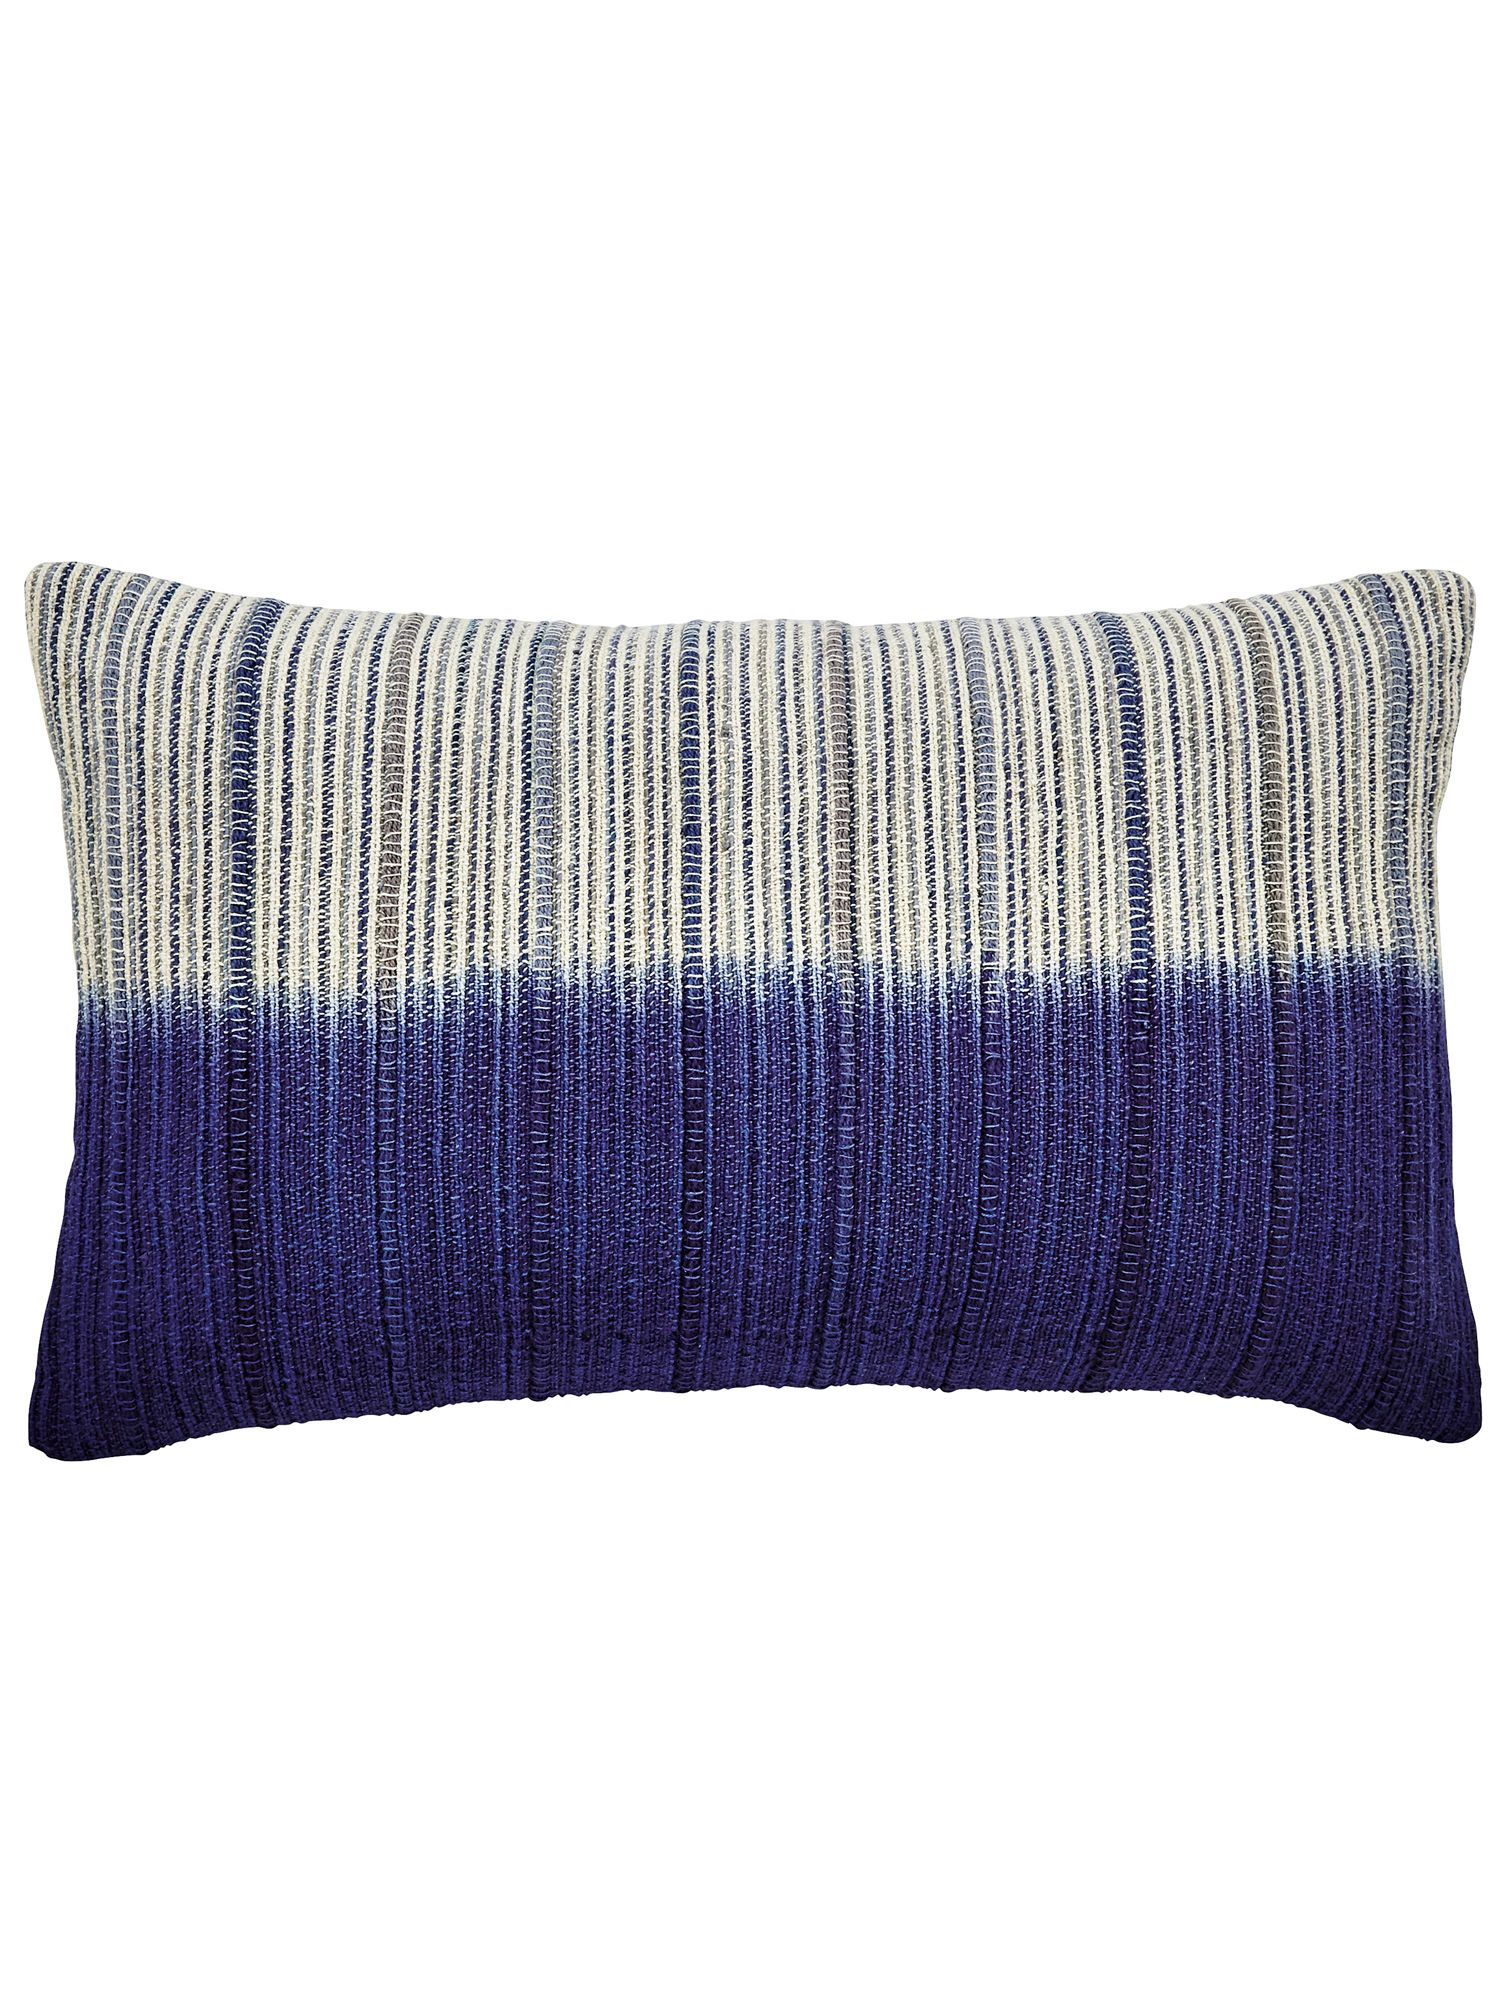 Image of Bedeck 1951 Damara cushion 50x30cm blue